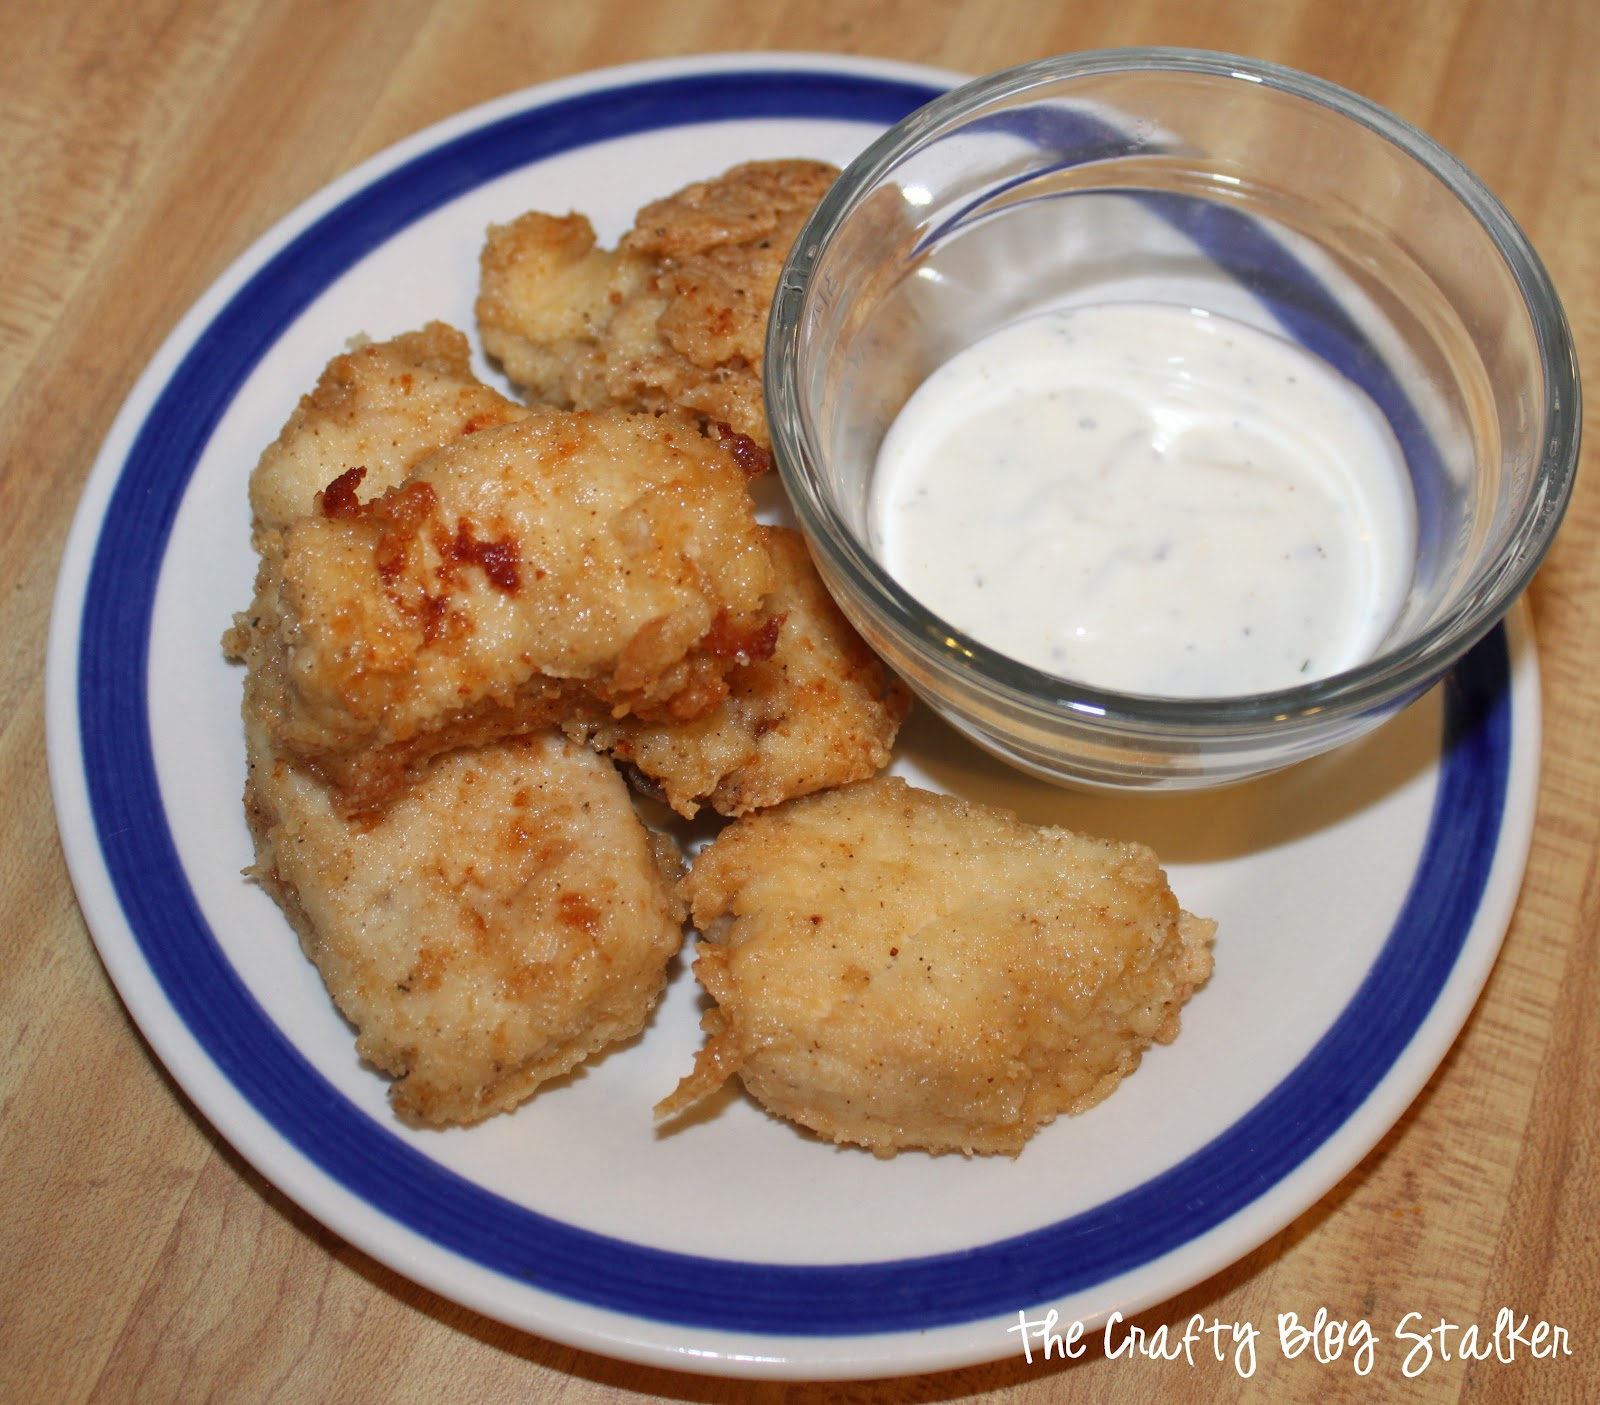 Nuggets Blog: How To Make Homemade Chicken Nuggets